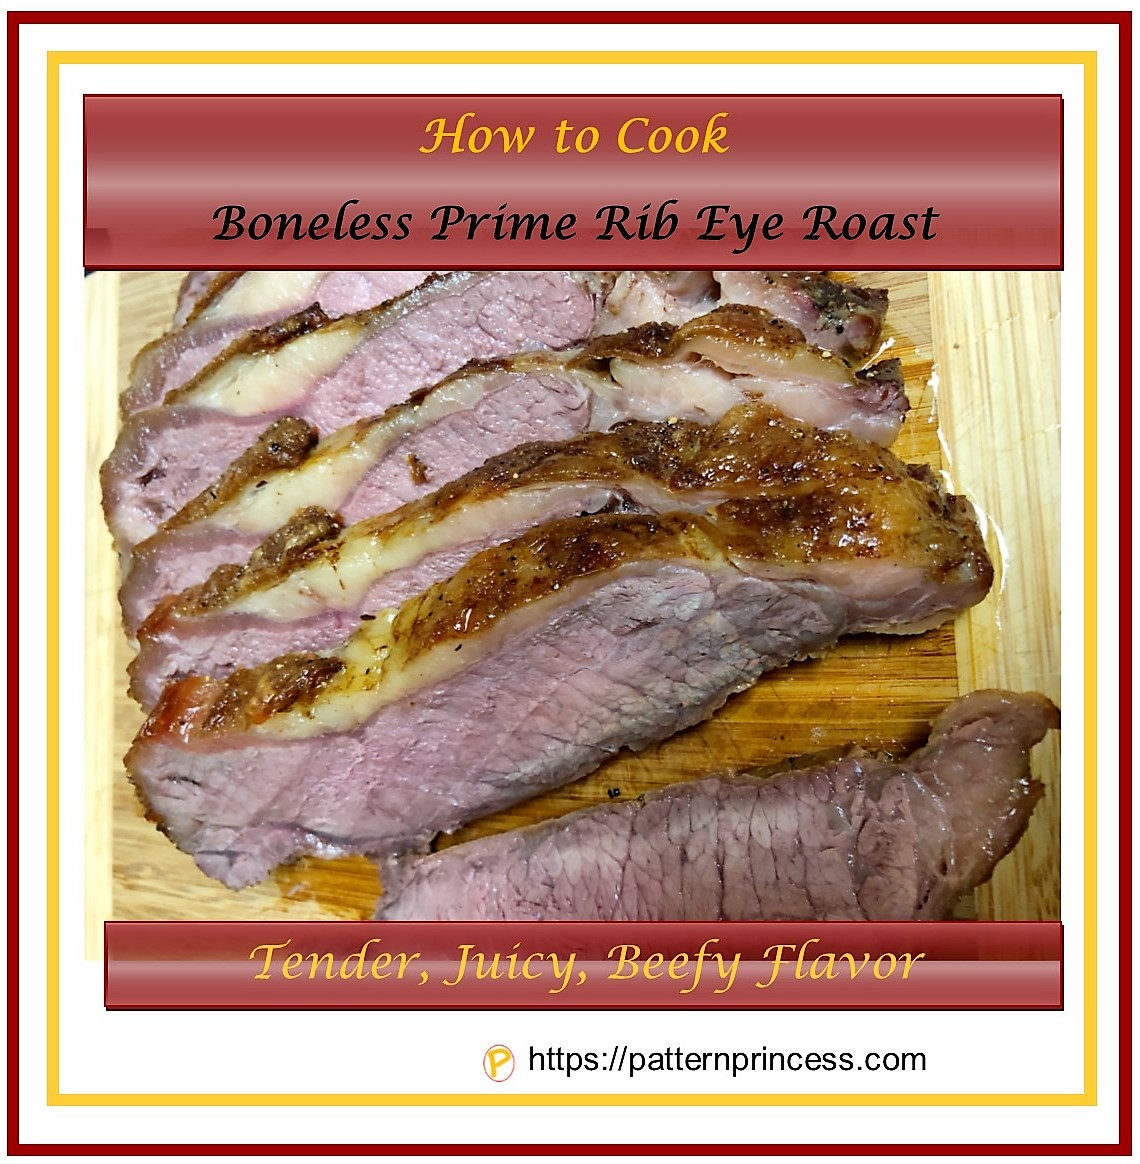 How to Cook Boneless Prime Rib Eye Roast 1